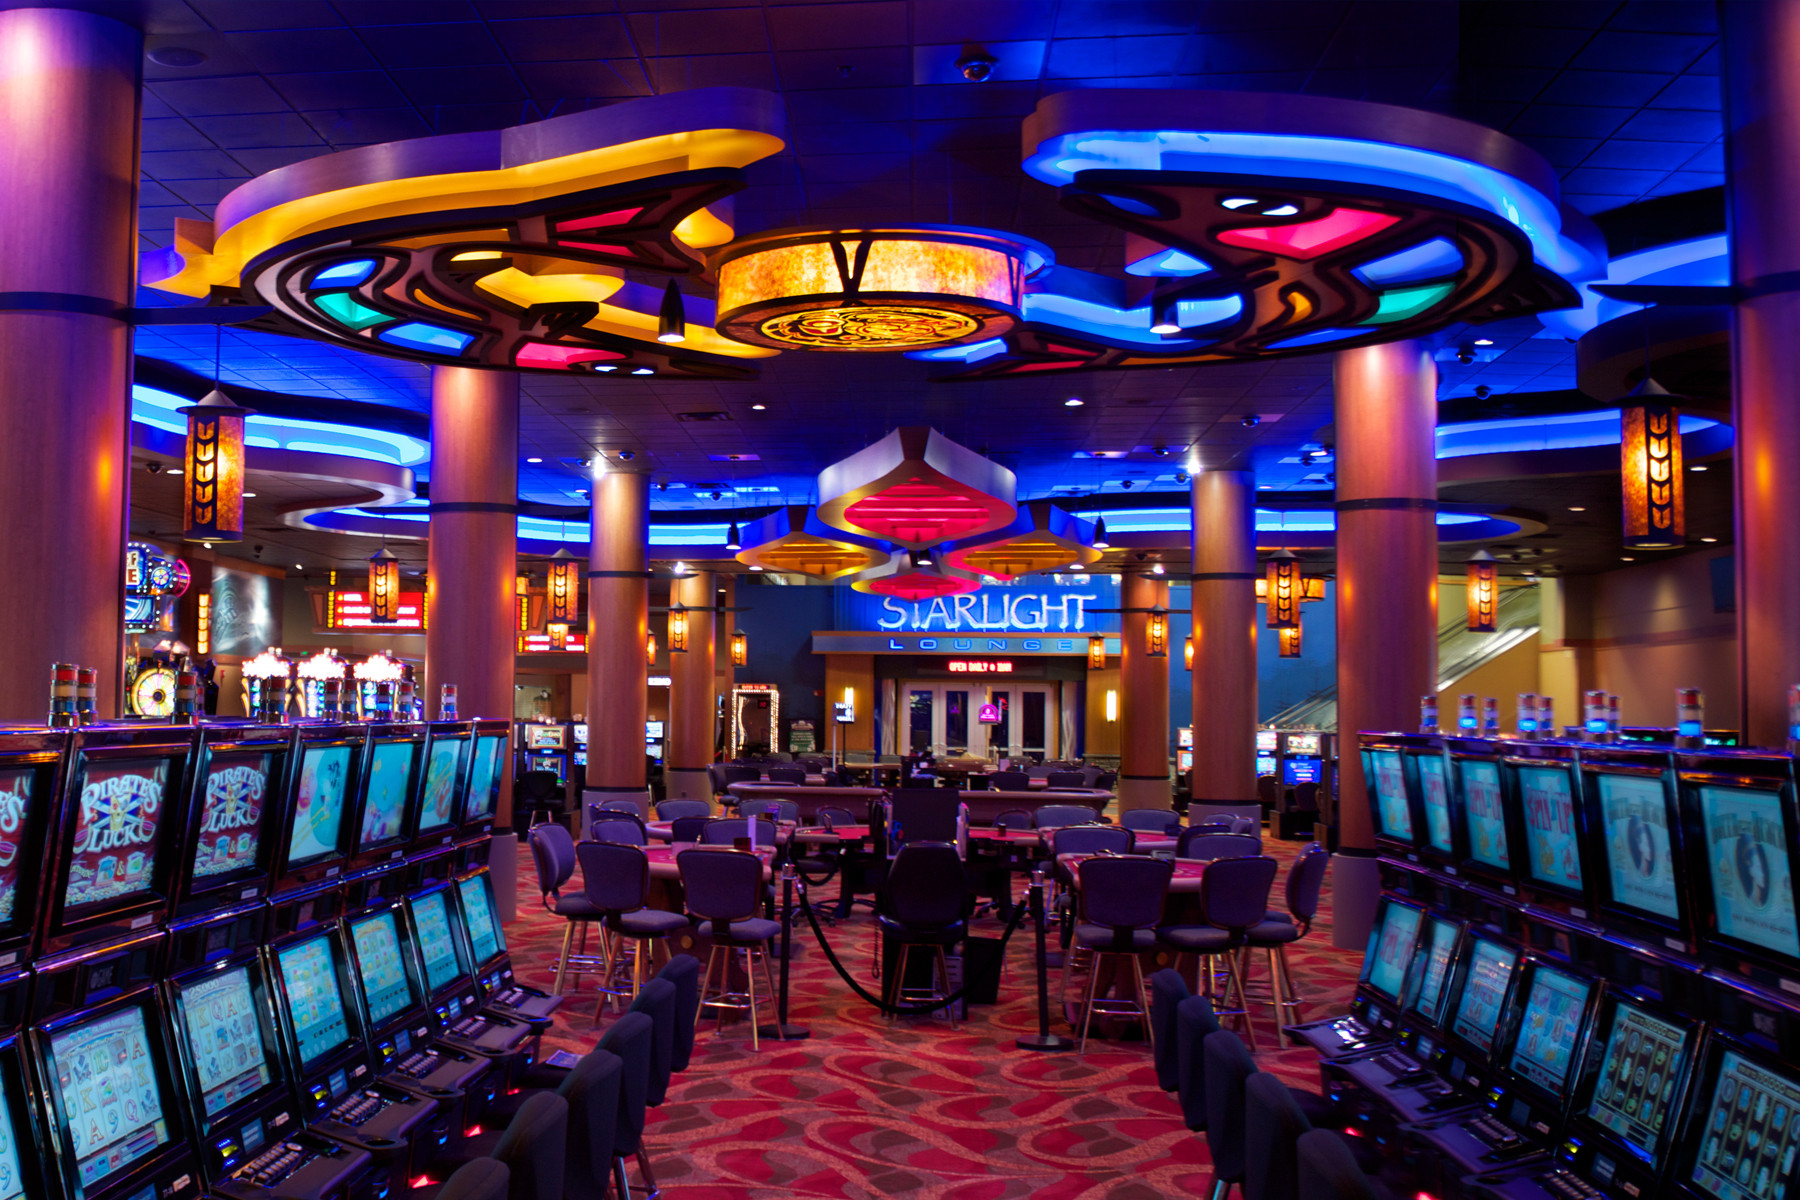 The importance of online casinos today